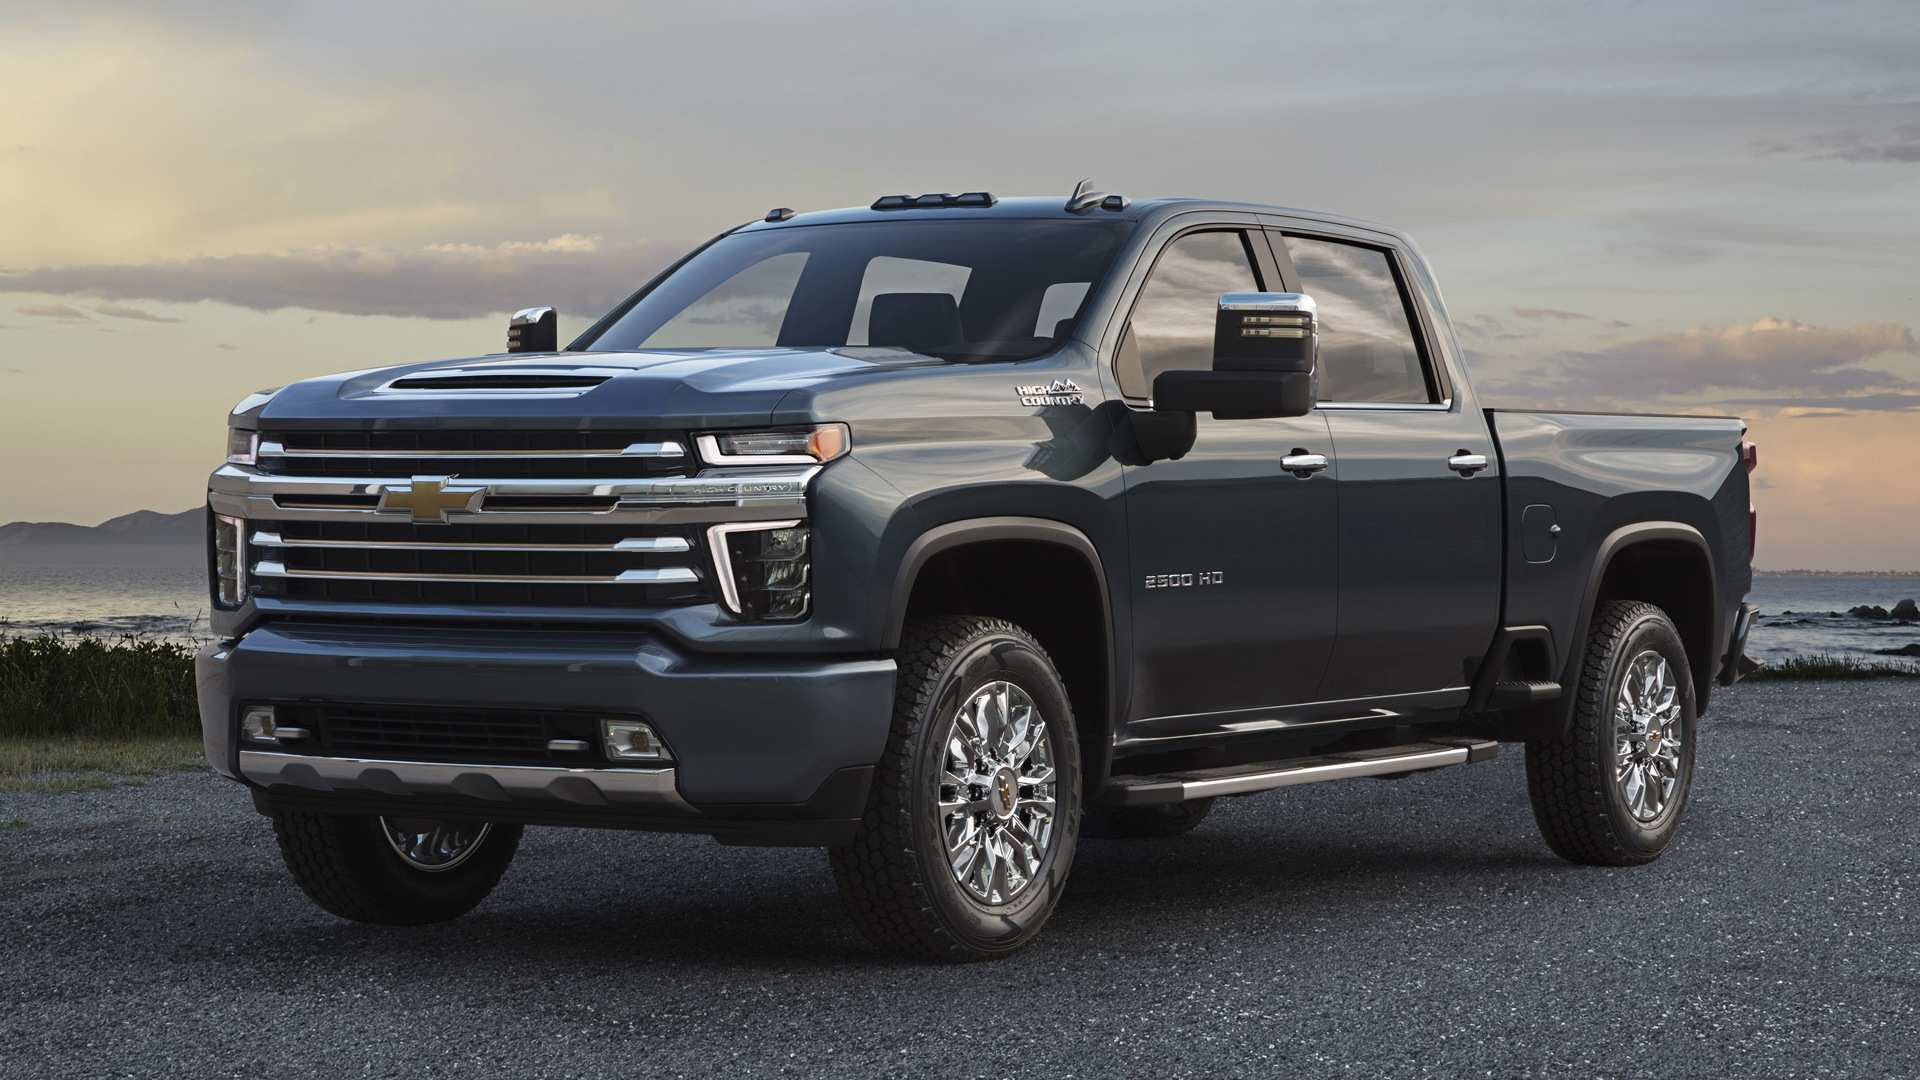 19 Gallery of 2020 Chevy Silverado Performance and New Engine by 2020 Chevy Silverado